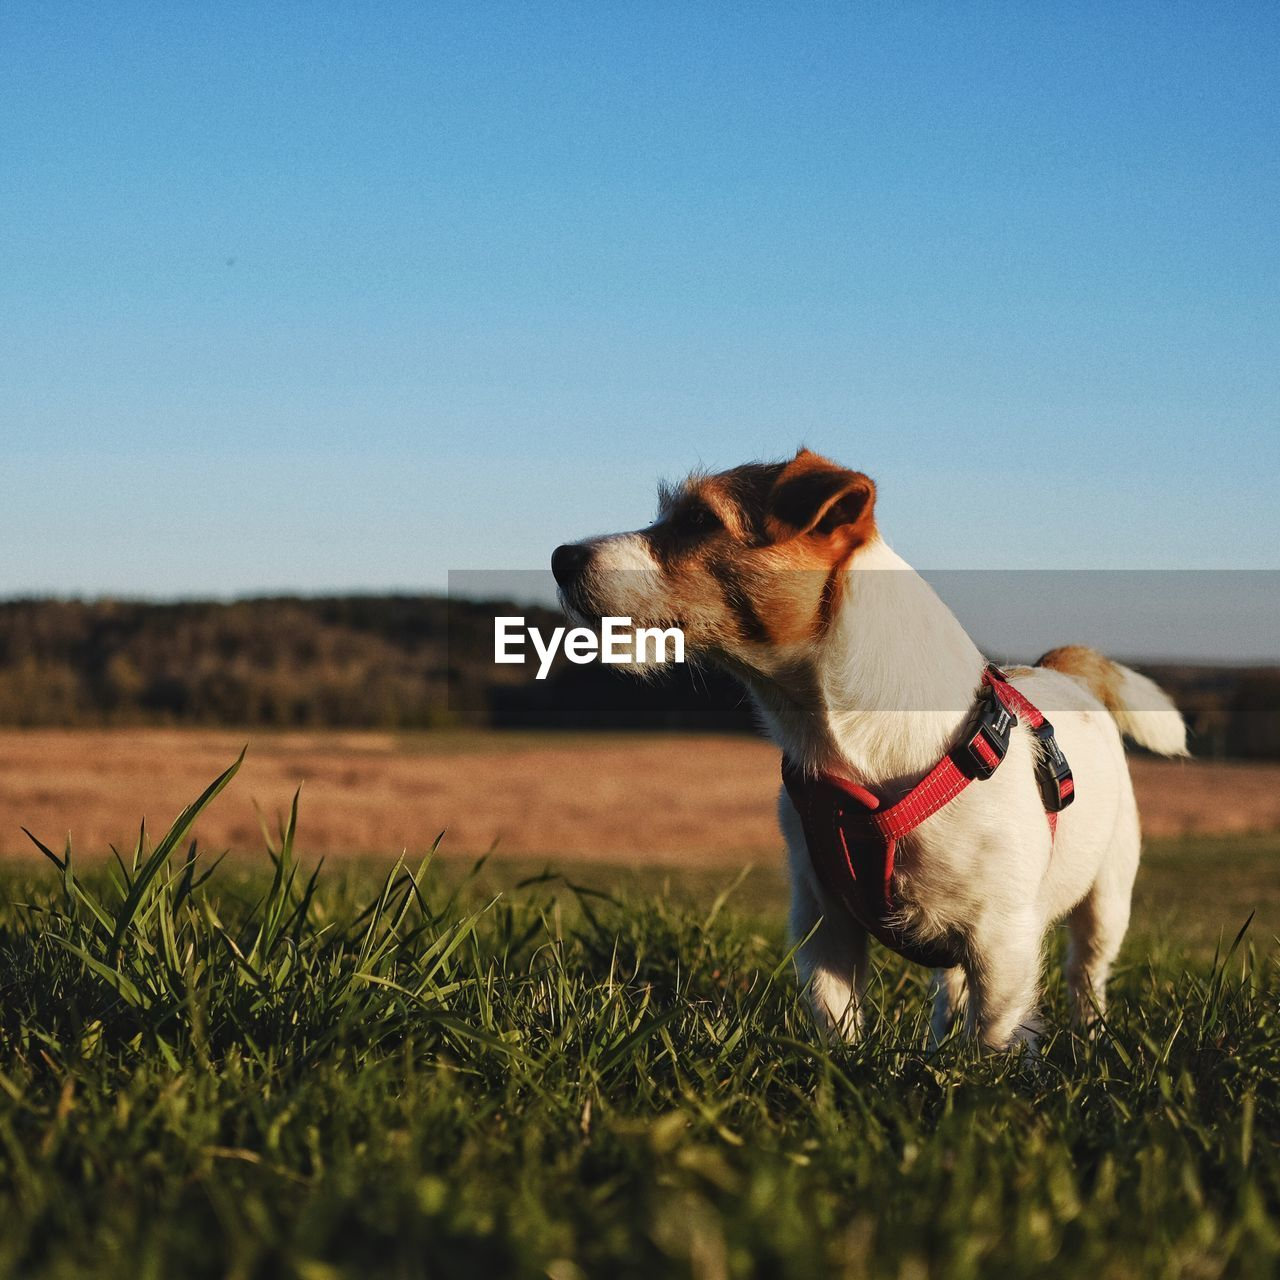 Dog Standing On Grassy Field Against Clear Sky